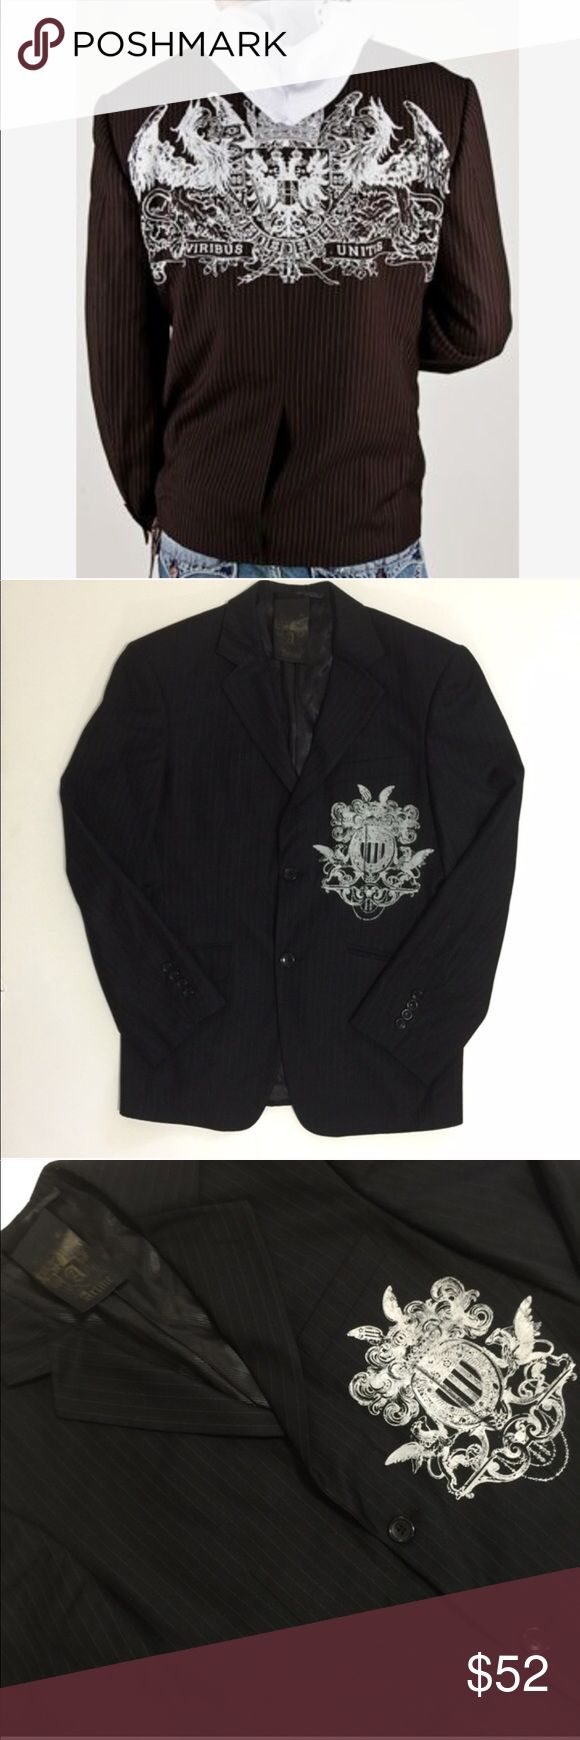 """Artine Men's Pinstripe U.K. Prep School Blazer Gorgeous lined pinstripe 2 button blazer.   50% poly, 50% rayon.  Dry clean only.  19"""" shoulder to shoulder 17.5"""" underarm to bottom of sleeve  There is about an inch at the bottom of the sleeve to take it down if needed. A few dust spots have been noticed on the left sleeve (just from storage and one cleaned should come out).  All items photographed immediately prior to packing for shipping   Expect to receive a well-packed item without being…"""